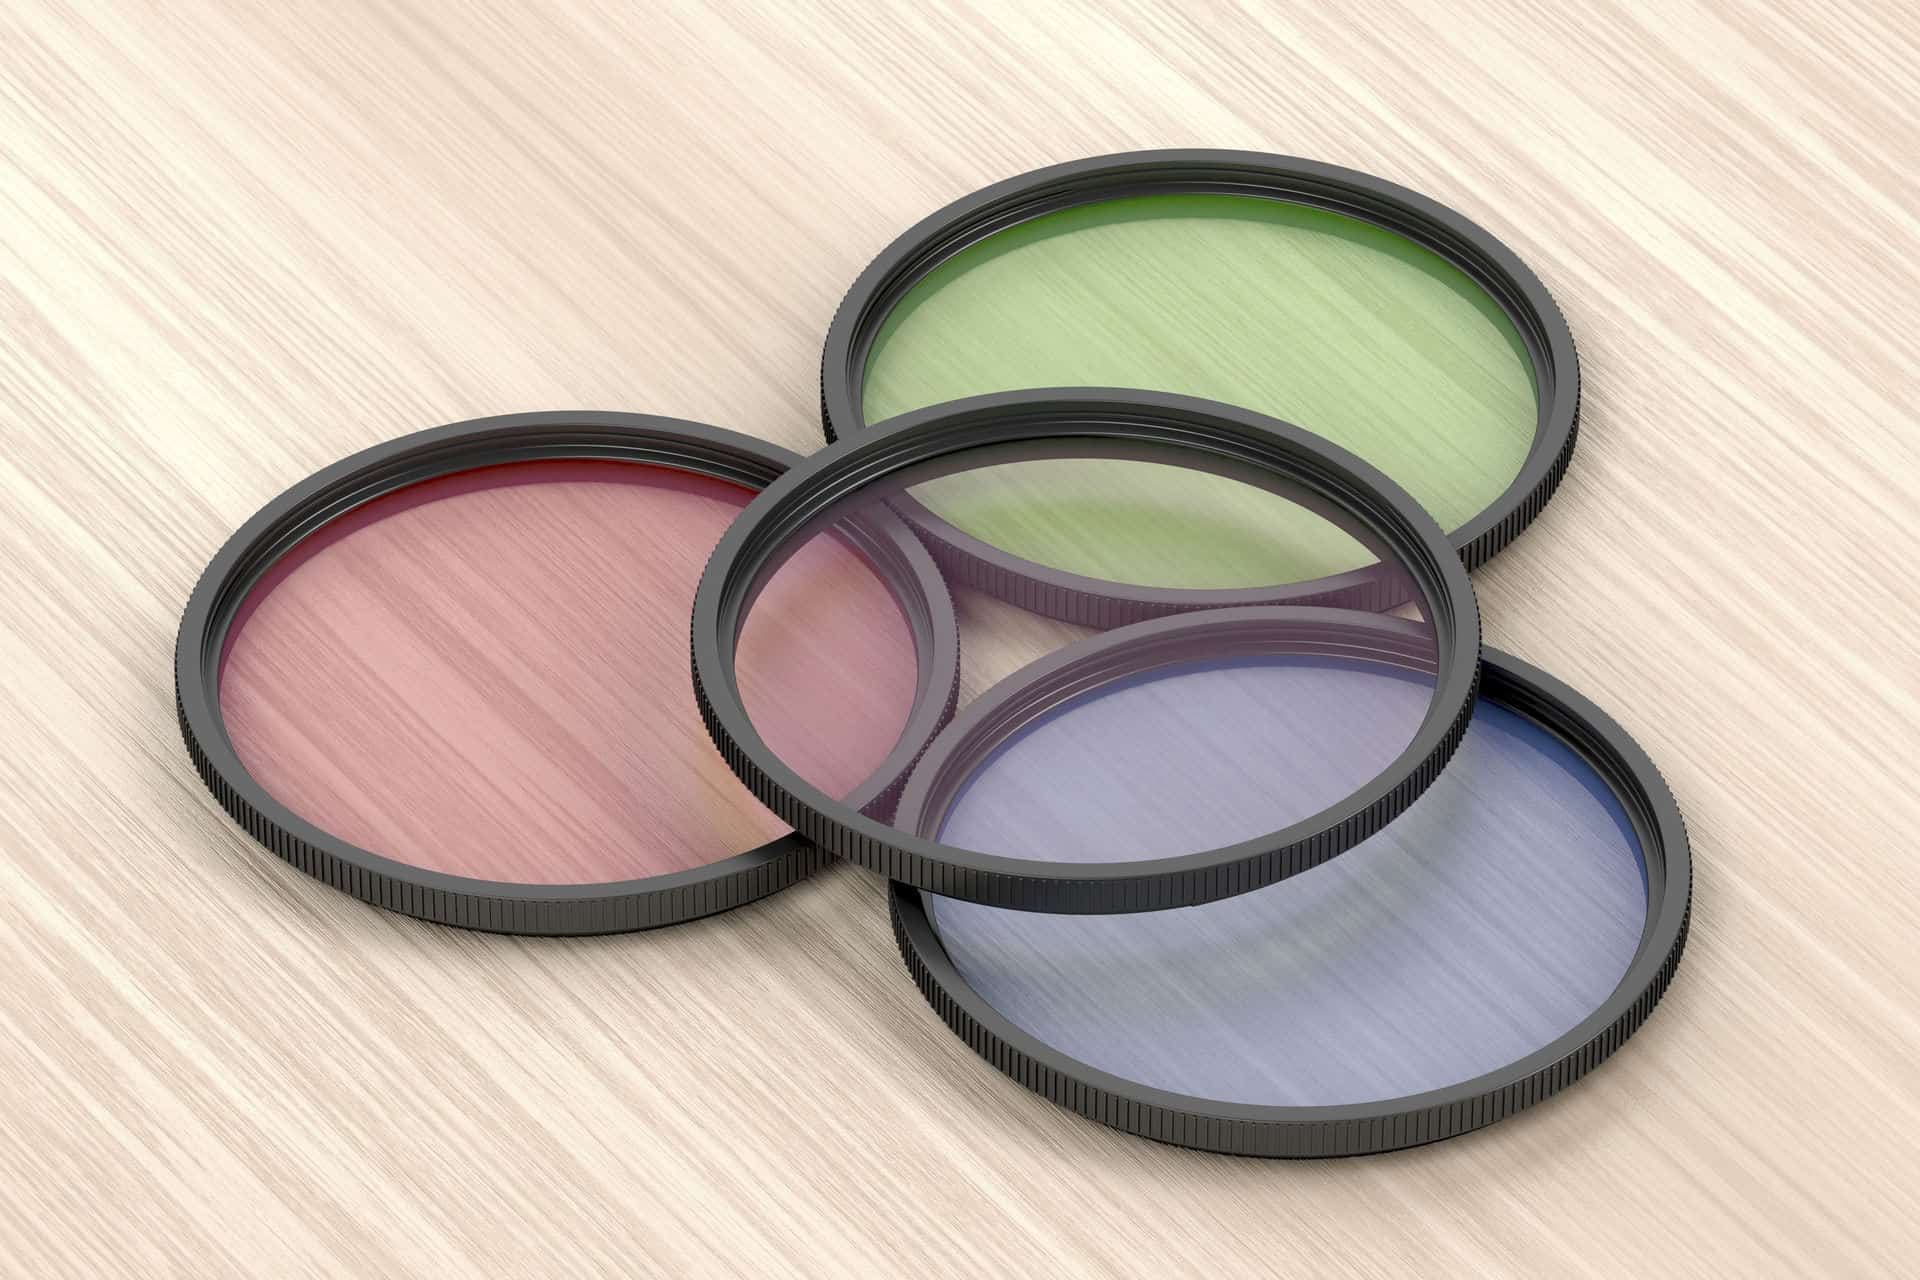 Do Digital Cameras Need UV Filters?